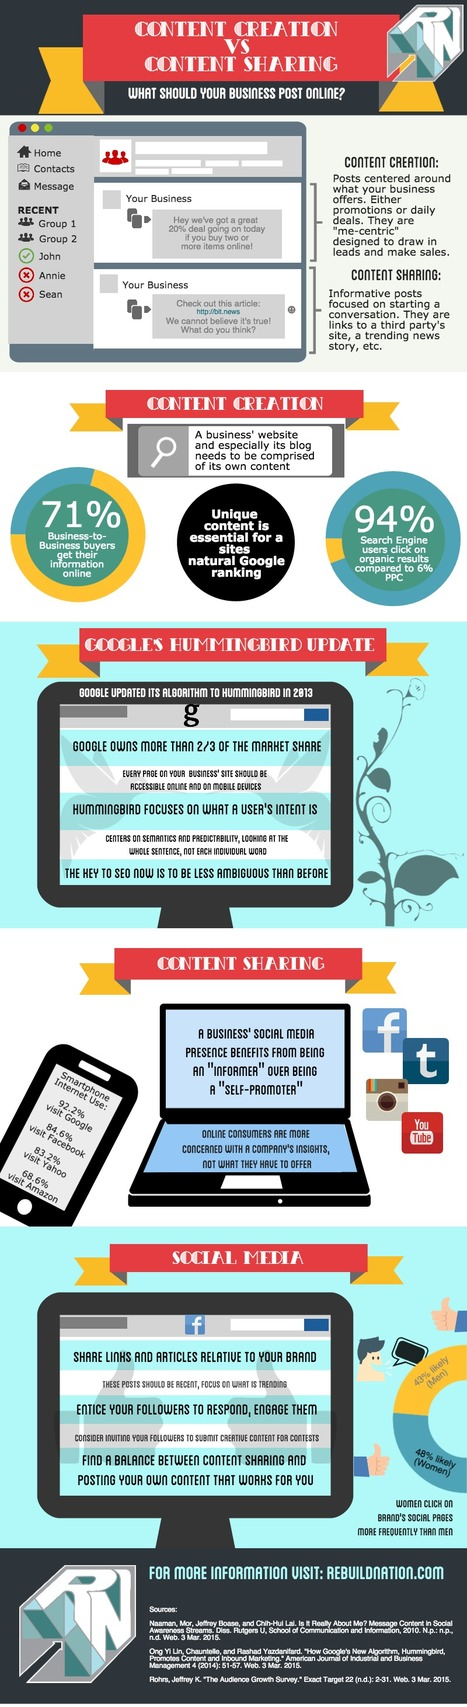 Should you Use Content Creation or Content Sharing? [Infographic] | Web Content Enjoyneering | Scoop.it